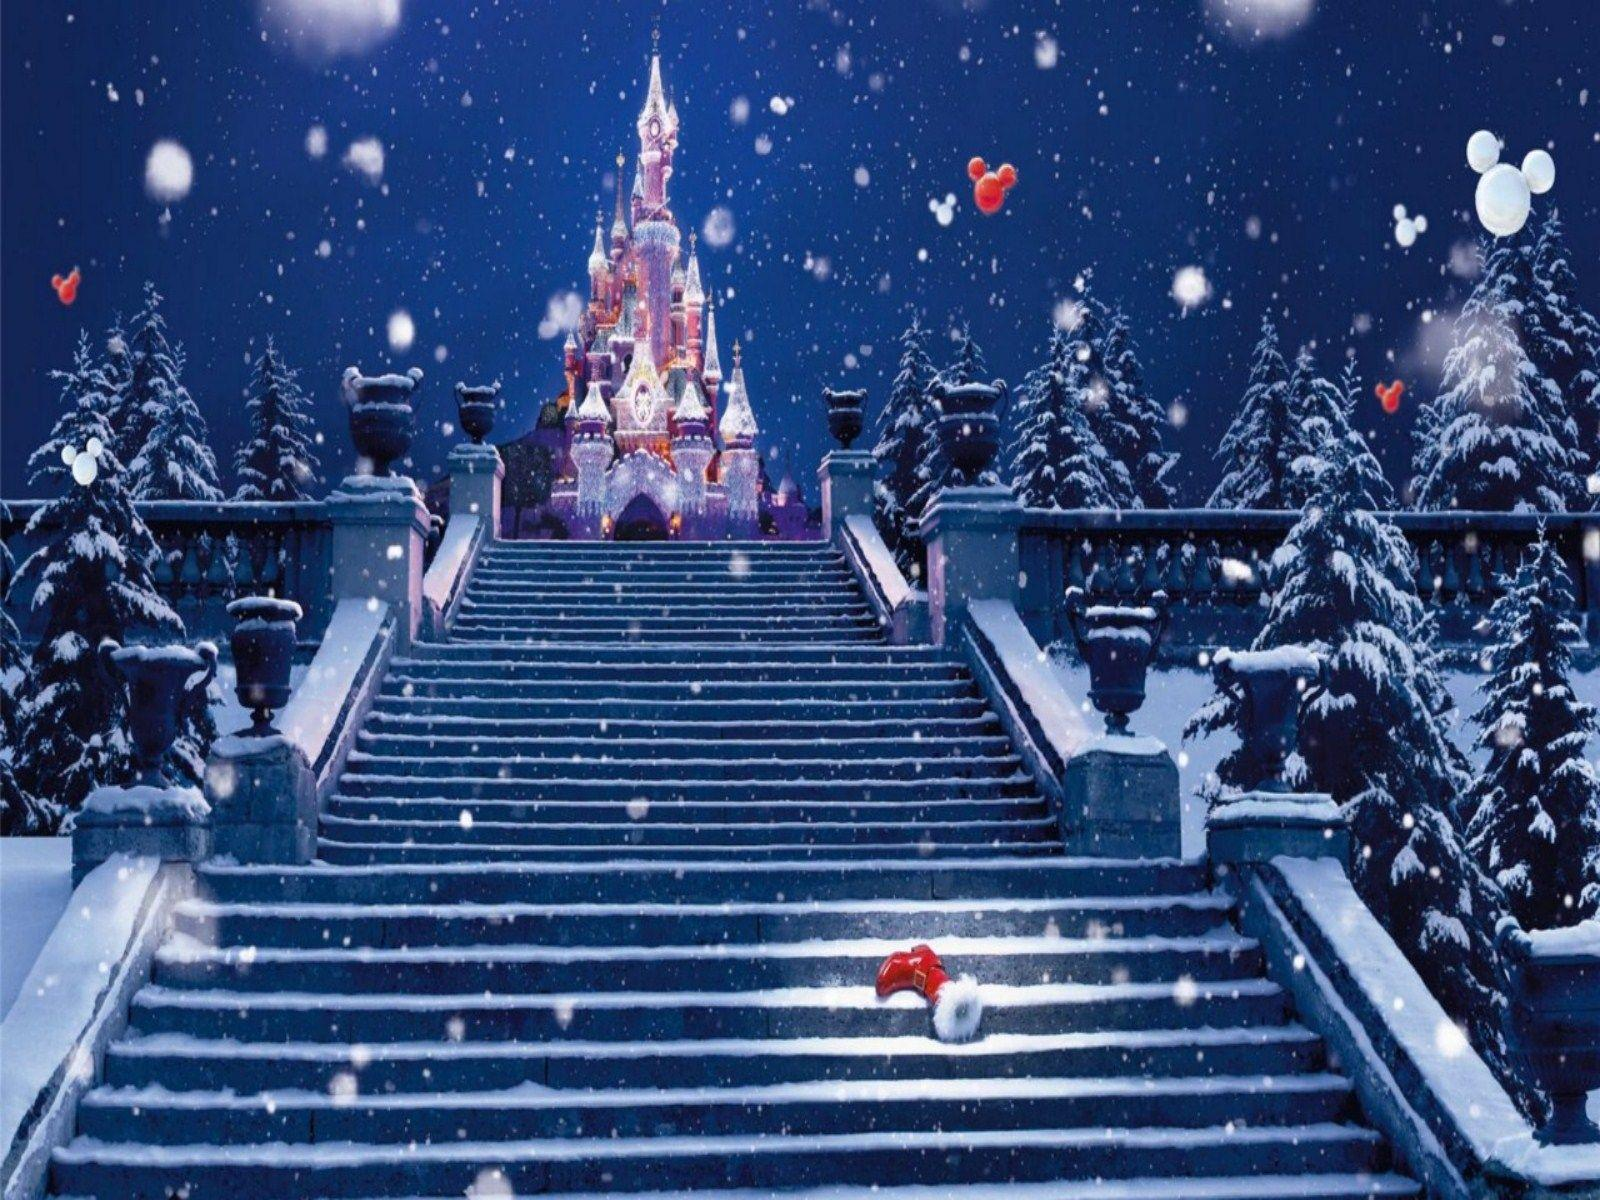 30 Disney Christmas Desktop Wallpapers   Download at WallpaperBro 1600x1200